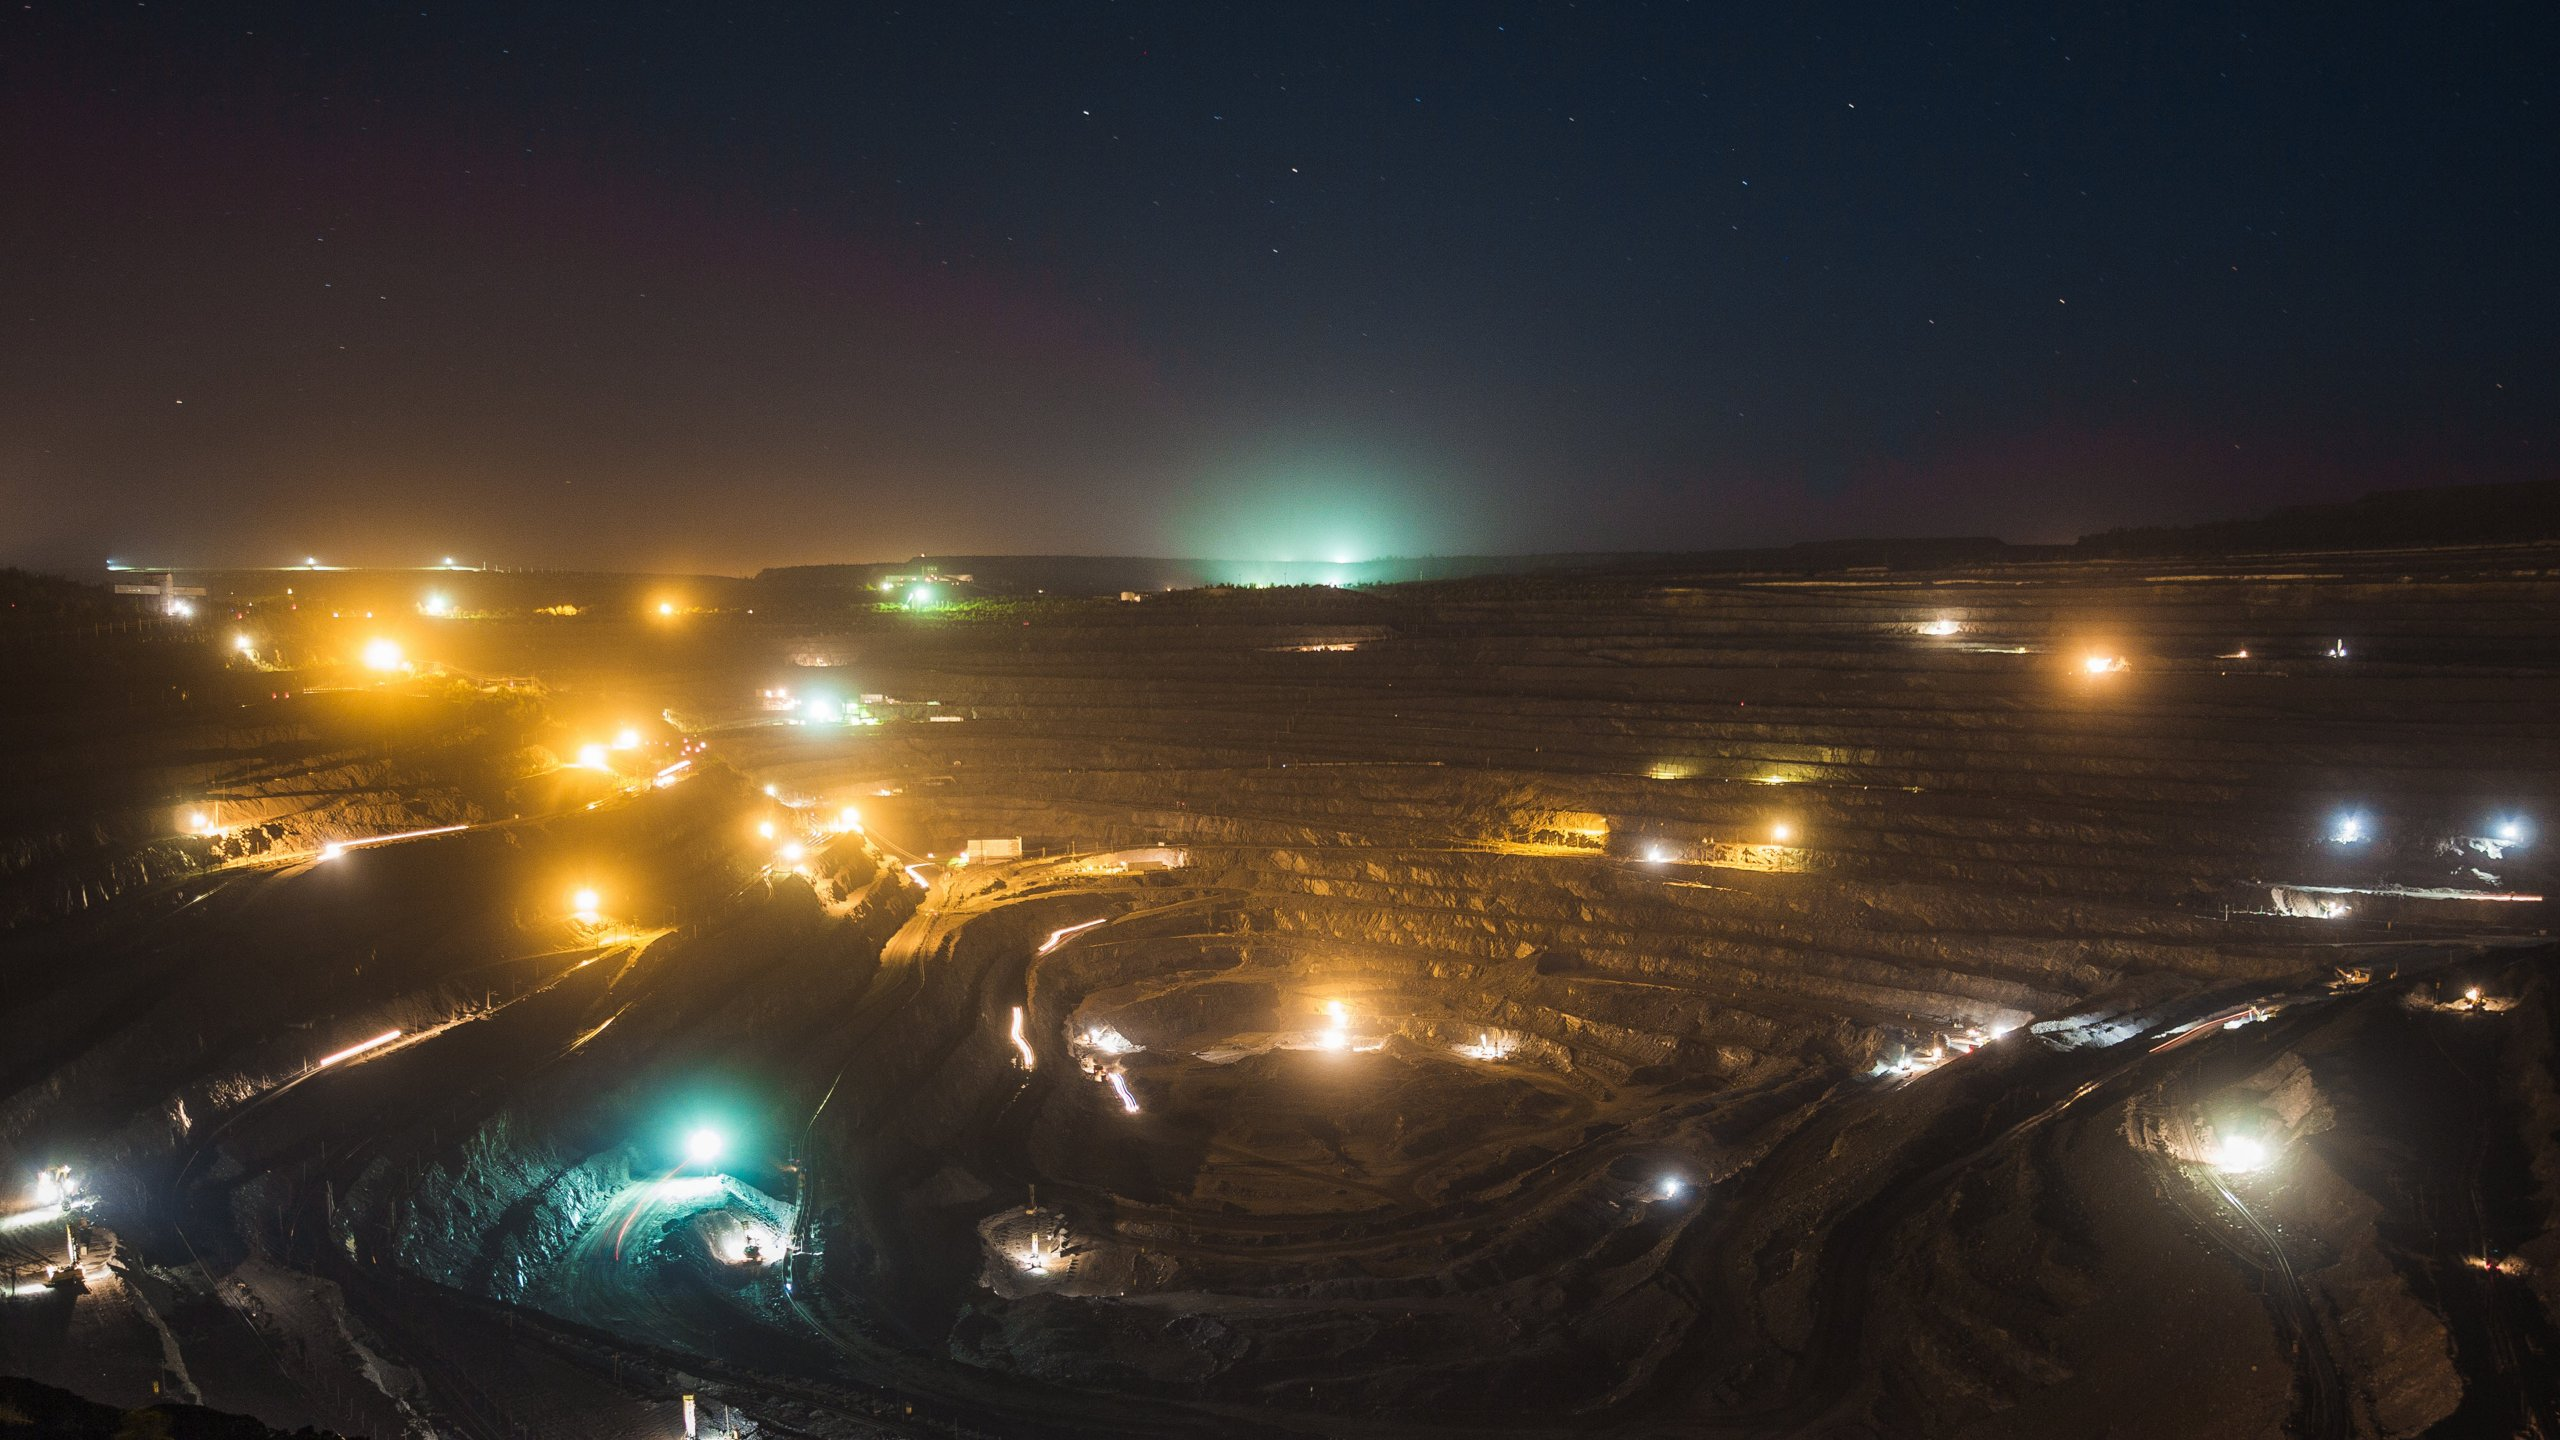 Open pit mining operations in the evening